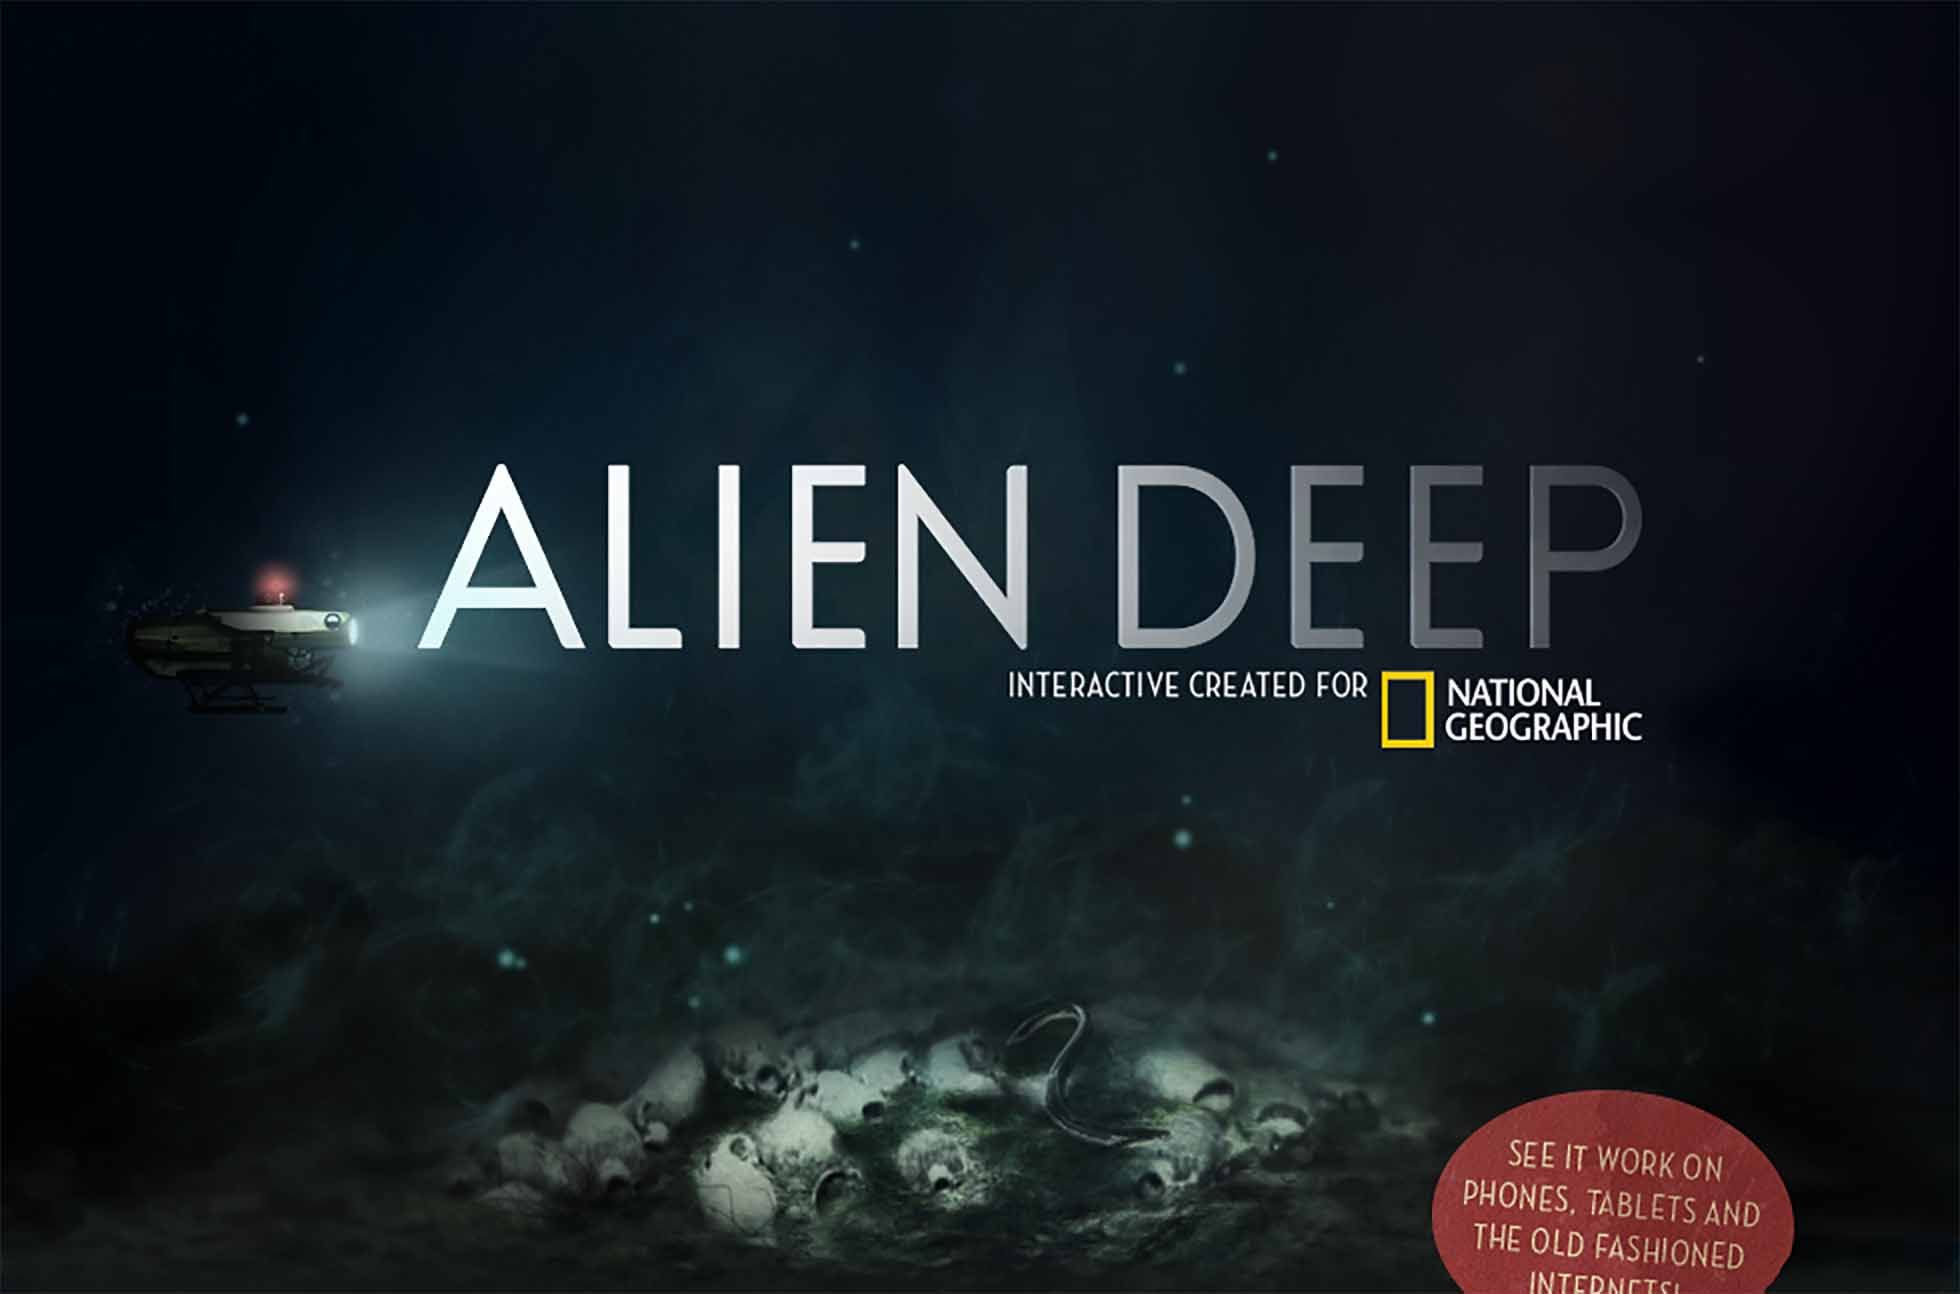 Alien Deep animation created for National Geographic. See it work on phones, tablets and the old fashioned internets!